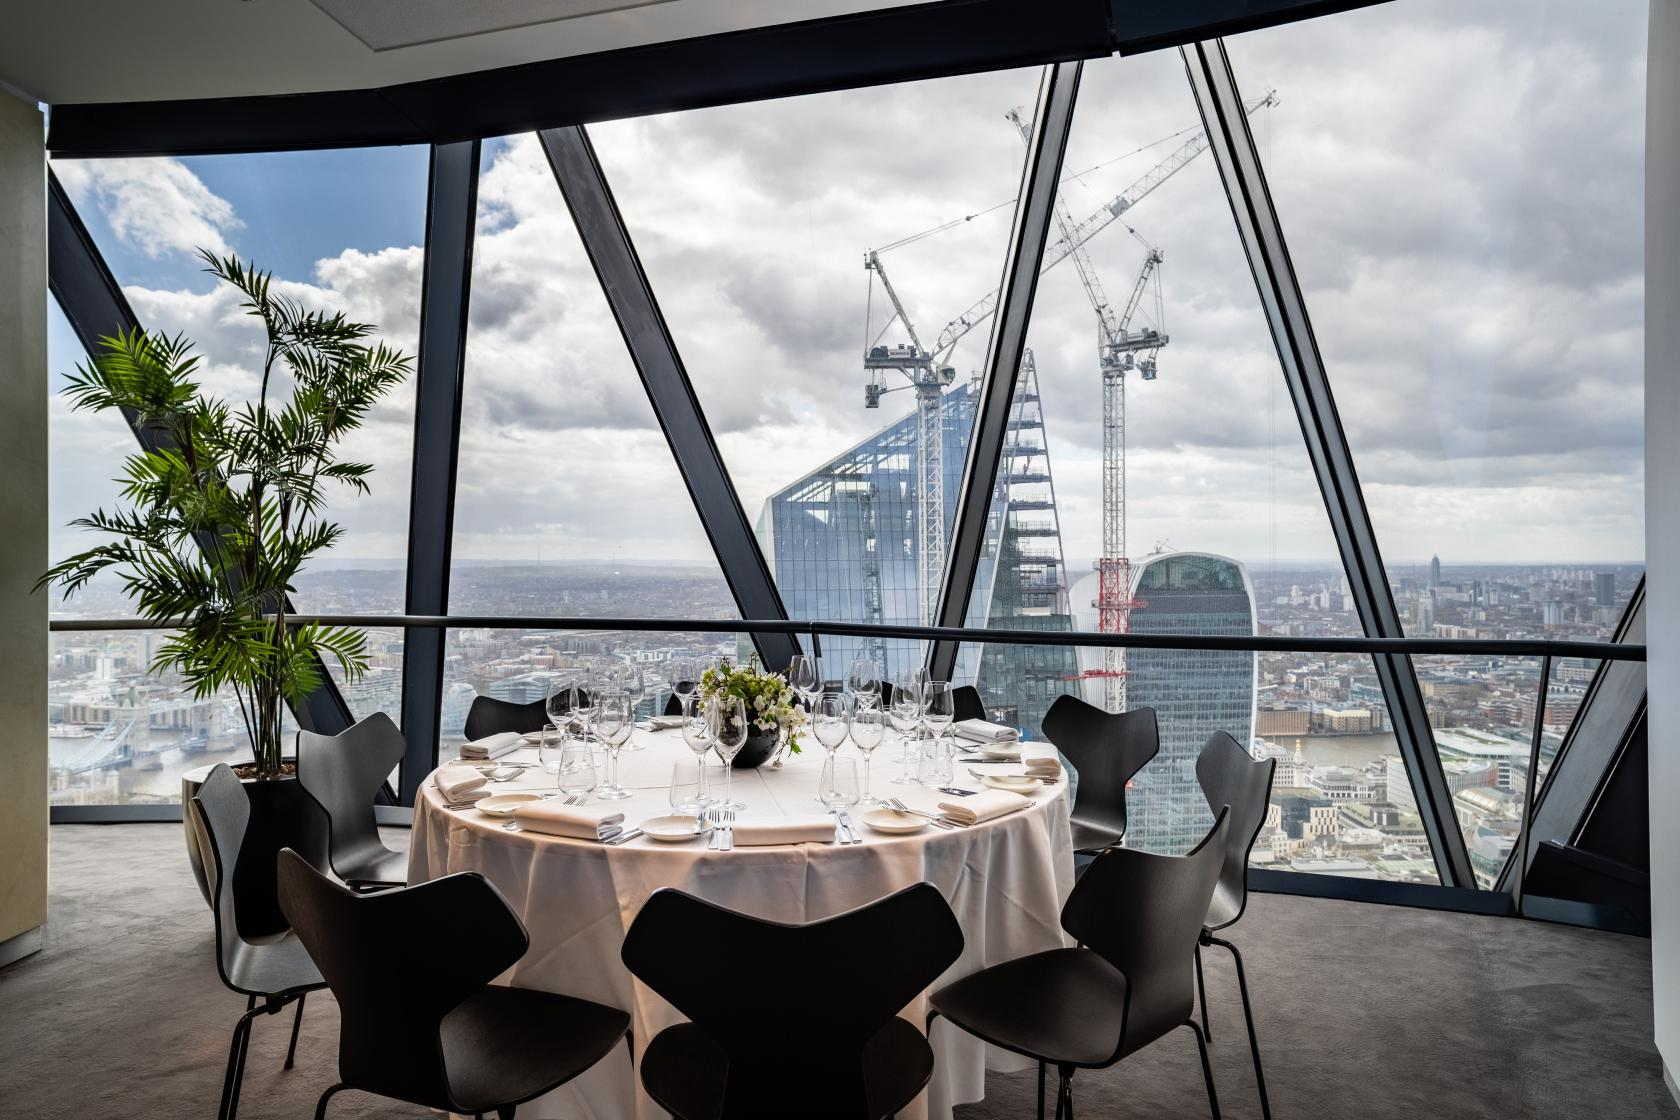 Searcys at The Gherkin offers a unique meeting room with a view, situated on the 38th floor of the iconic Gherkin.